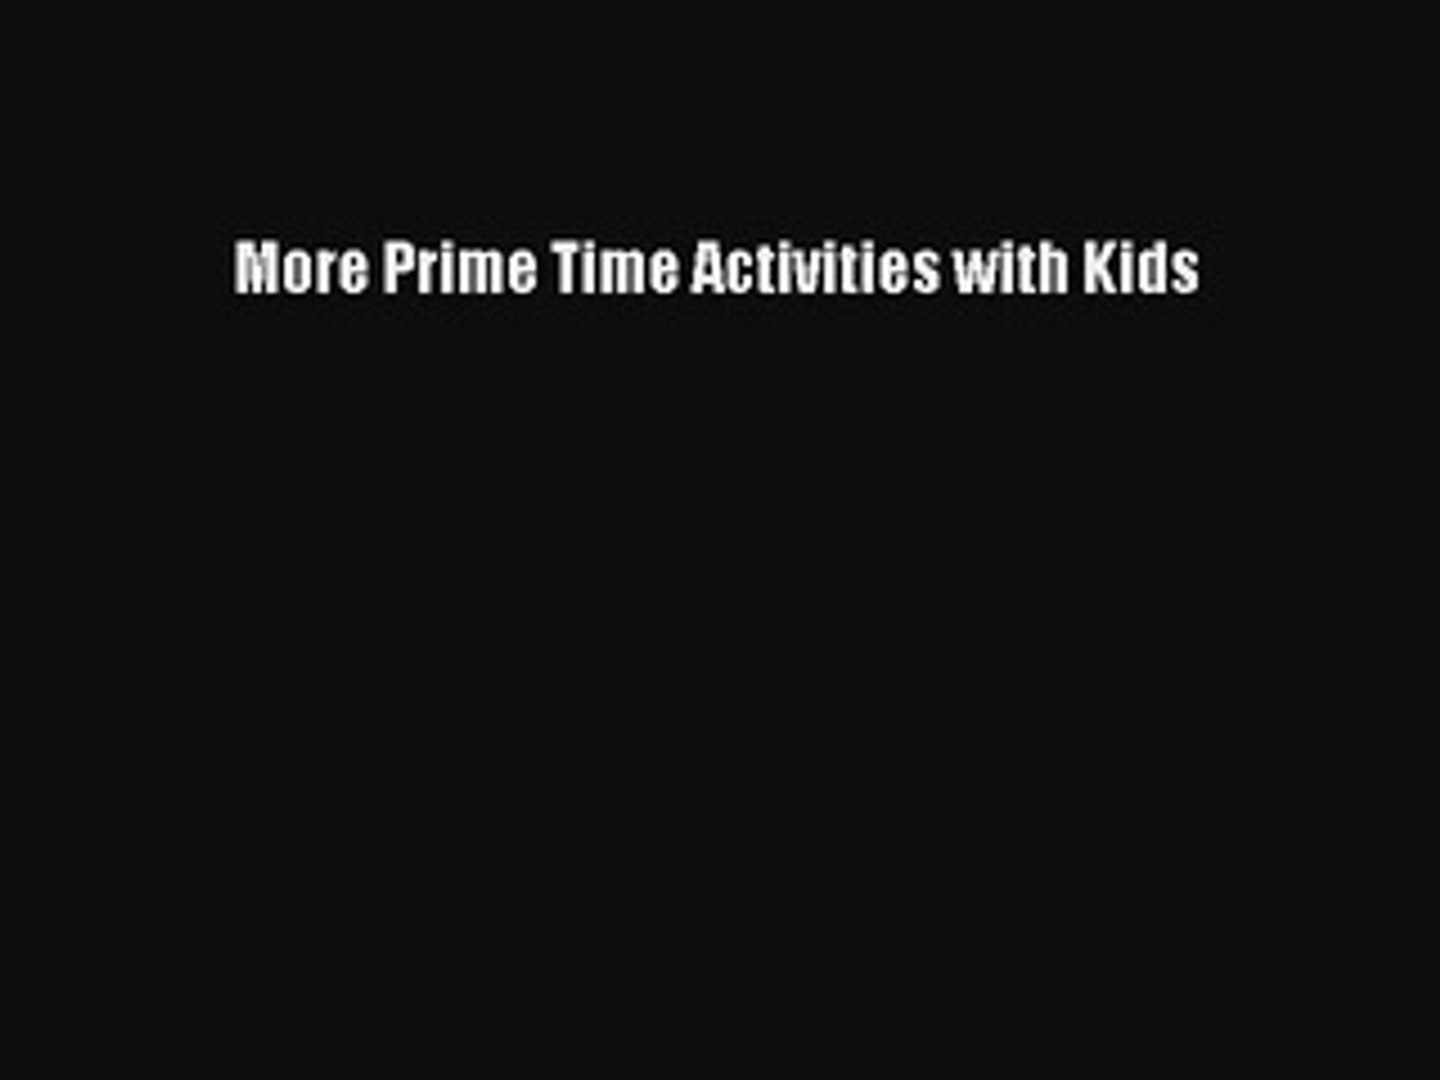 Read More Prime Time Activities with Kids Ebook Free